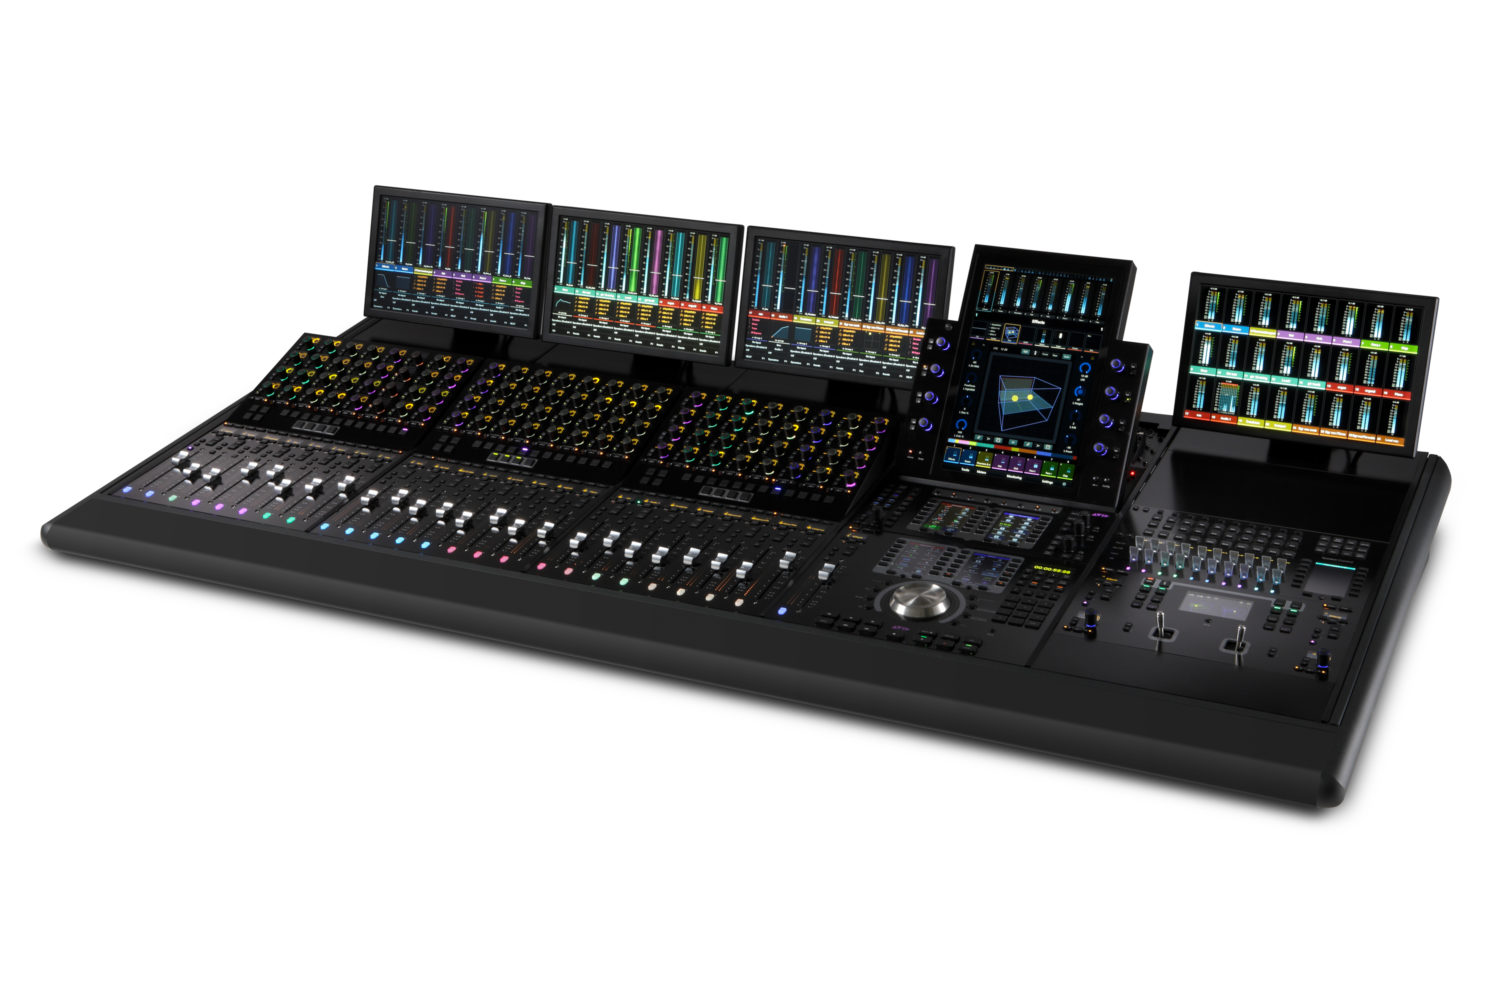 Avid S4 5ft 3CSMs, Joystick, Paddle Control, Displays Angle (1)